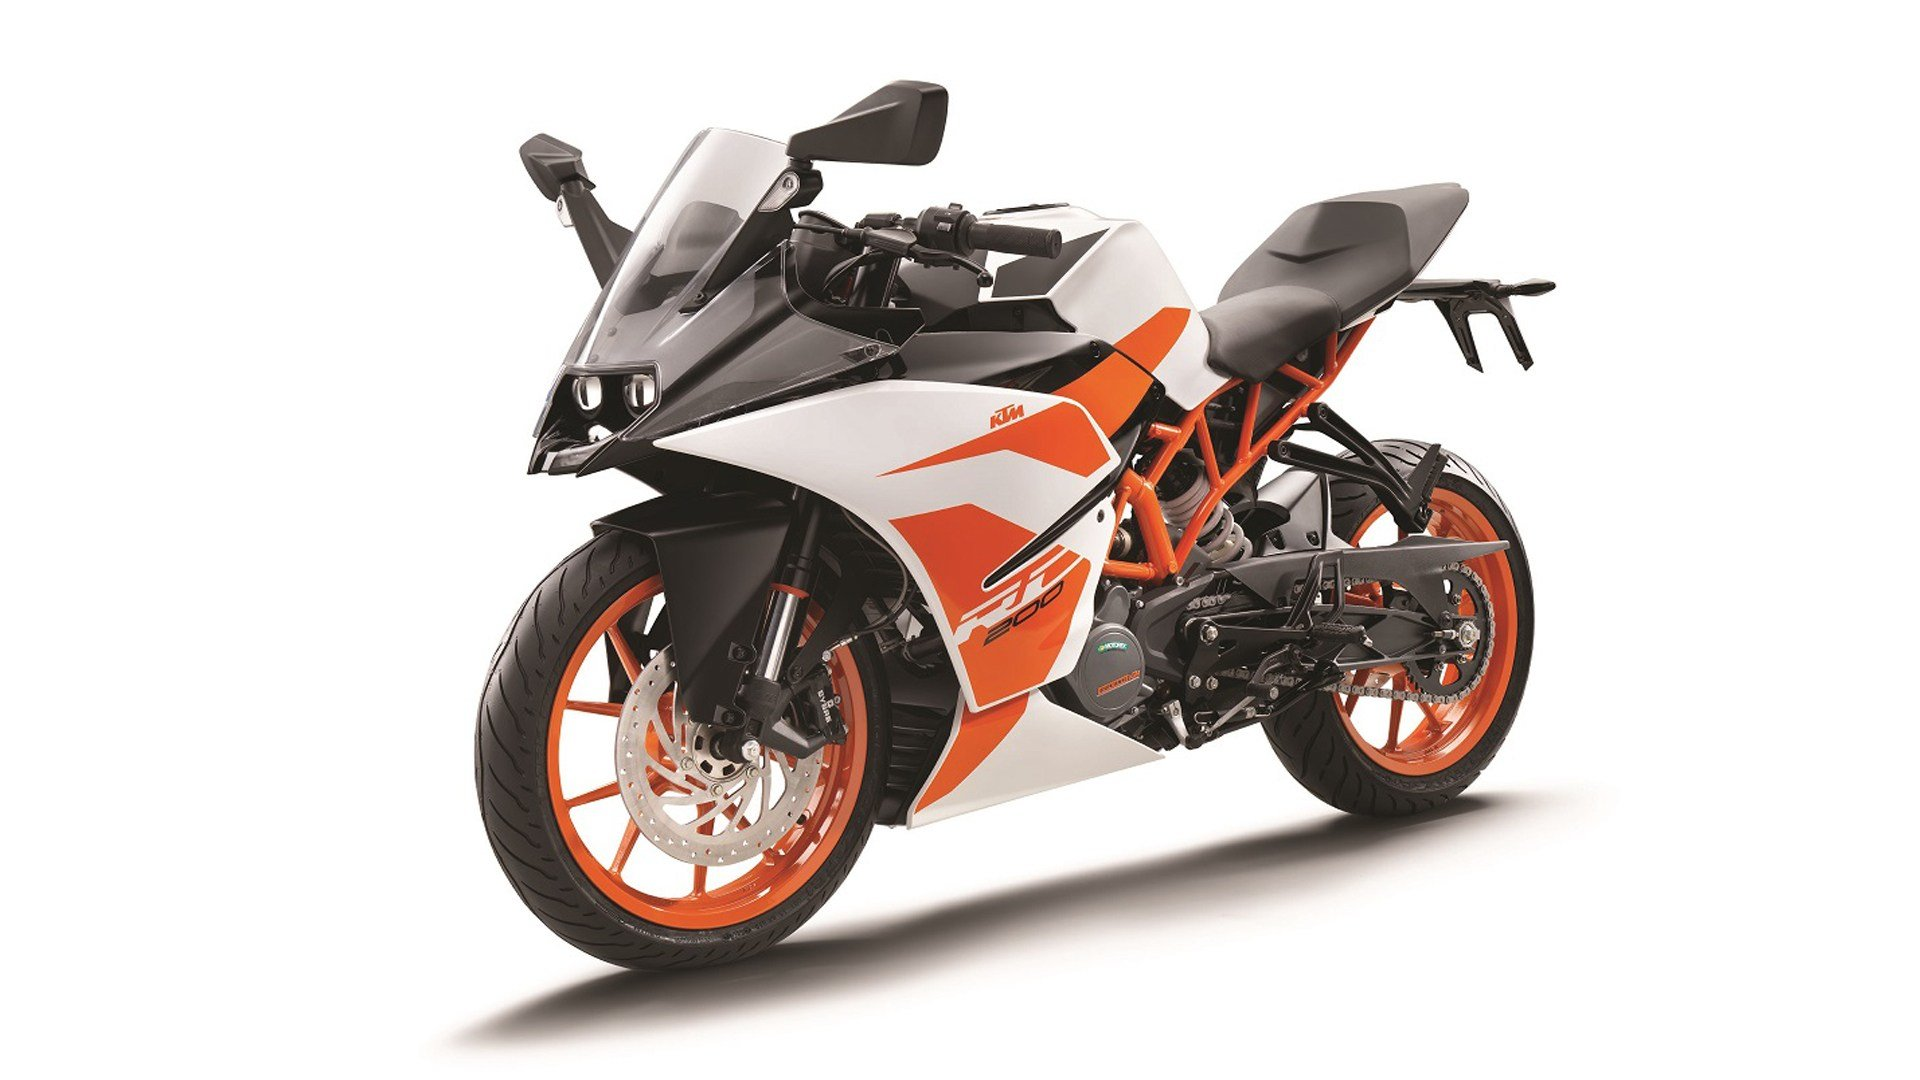 New Ktm Rc 200 2017 Price Mileage Reviews Specification On This Month